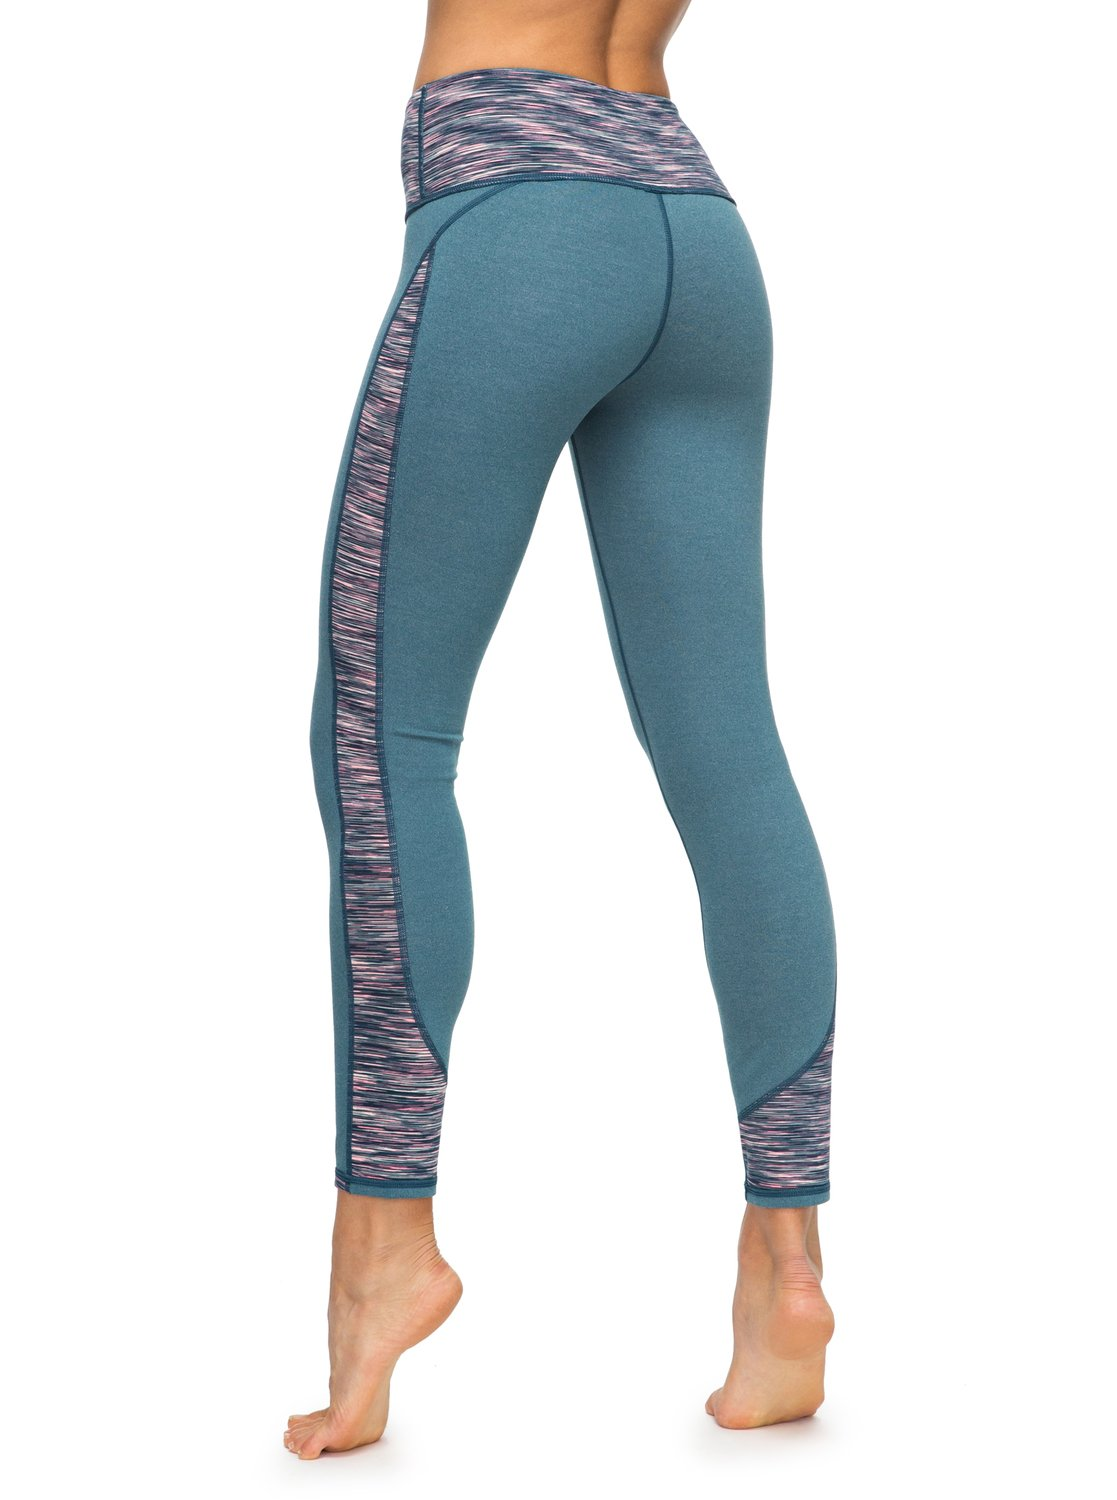 Can you believe yoga pants are one of the most divisive pieces of clothing in a woman's wardrobe? If you wear them outside the gym, everyone and their mother has an opinion, even lawmakers. In.